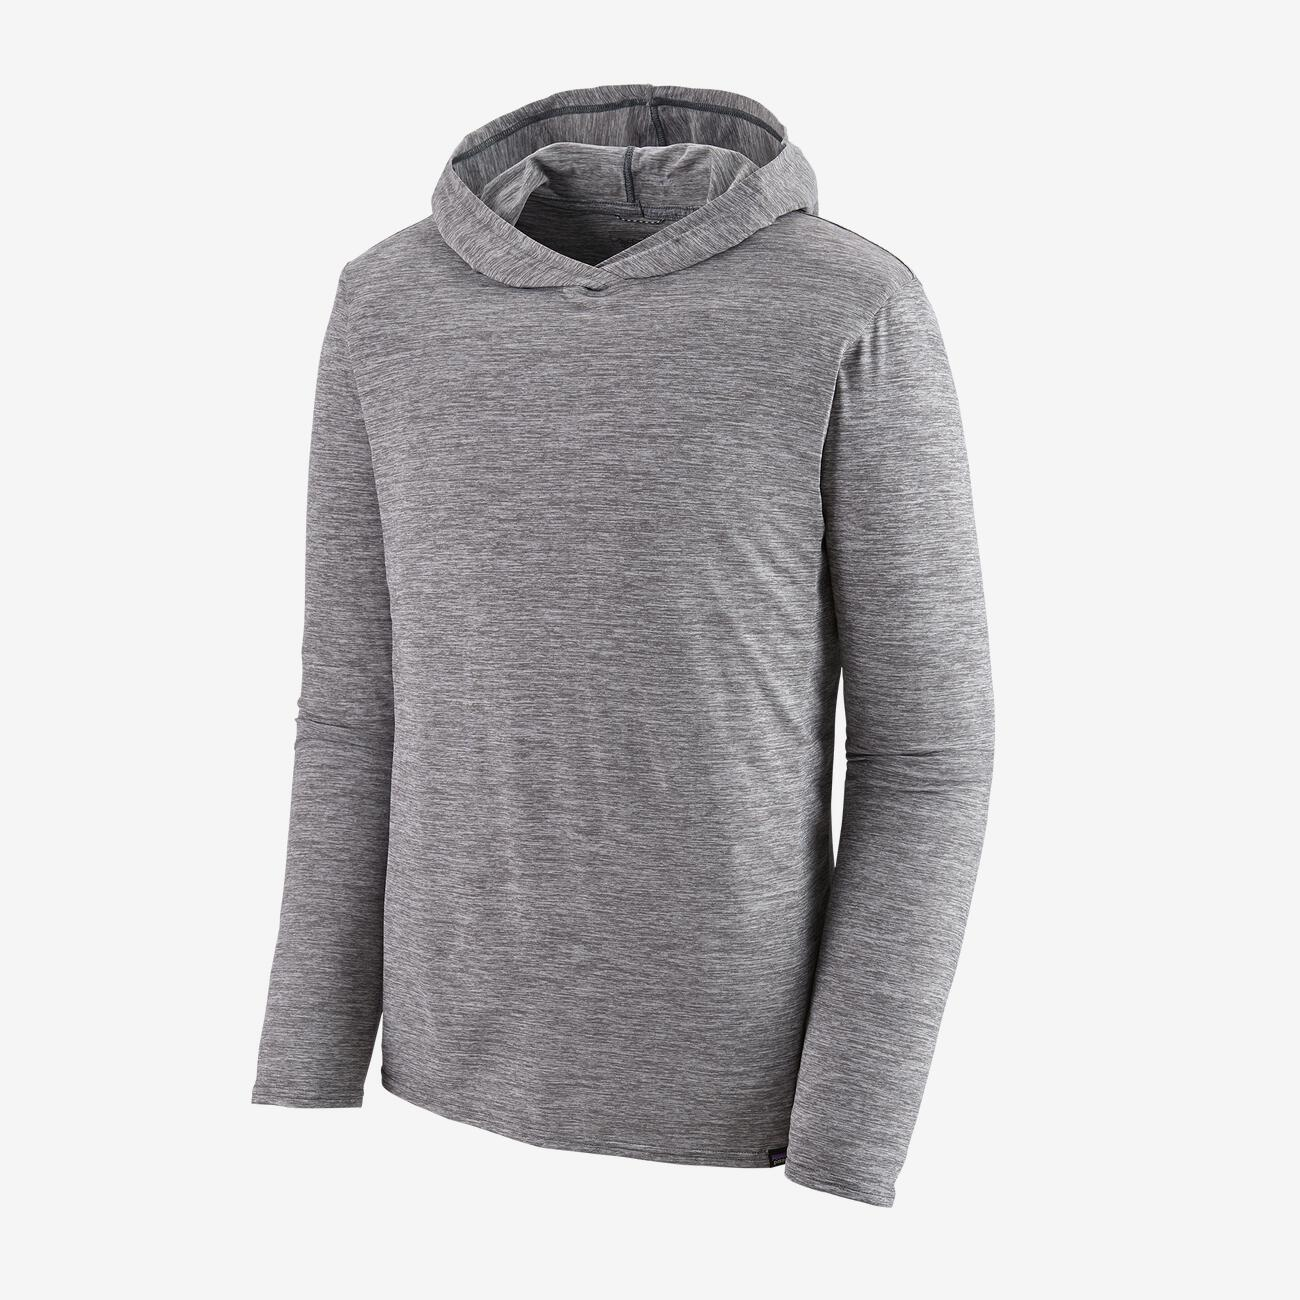 Patagonia Capilene Cool Daily Hoody - L/S